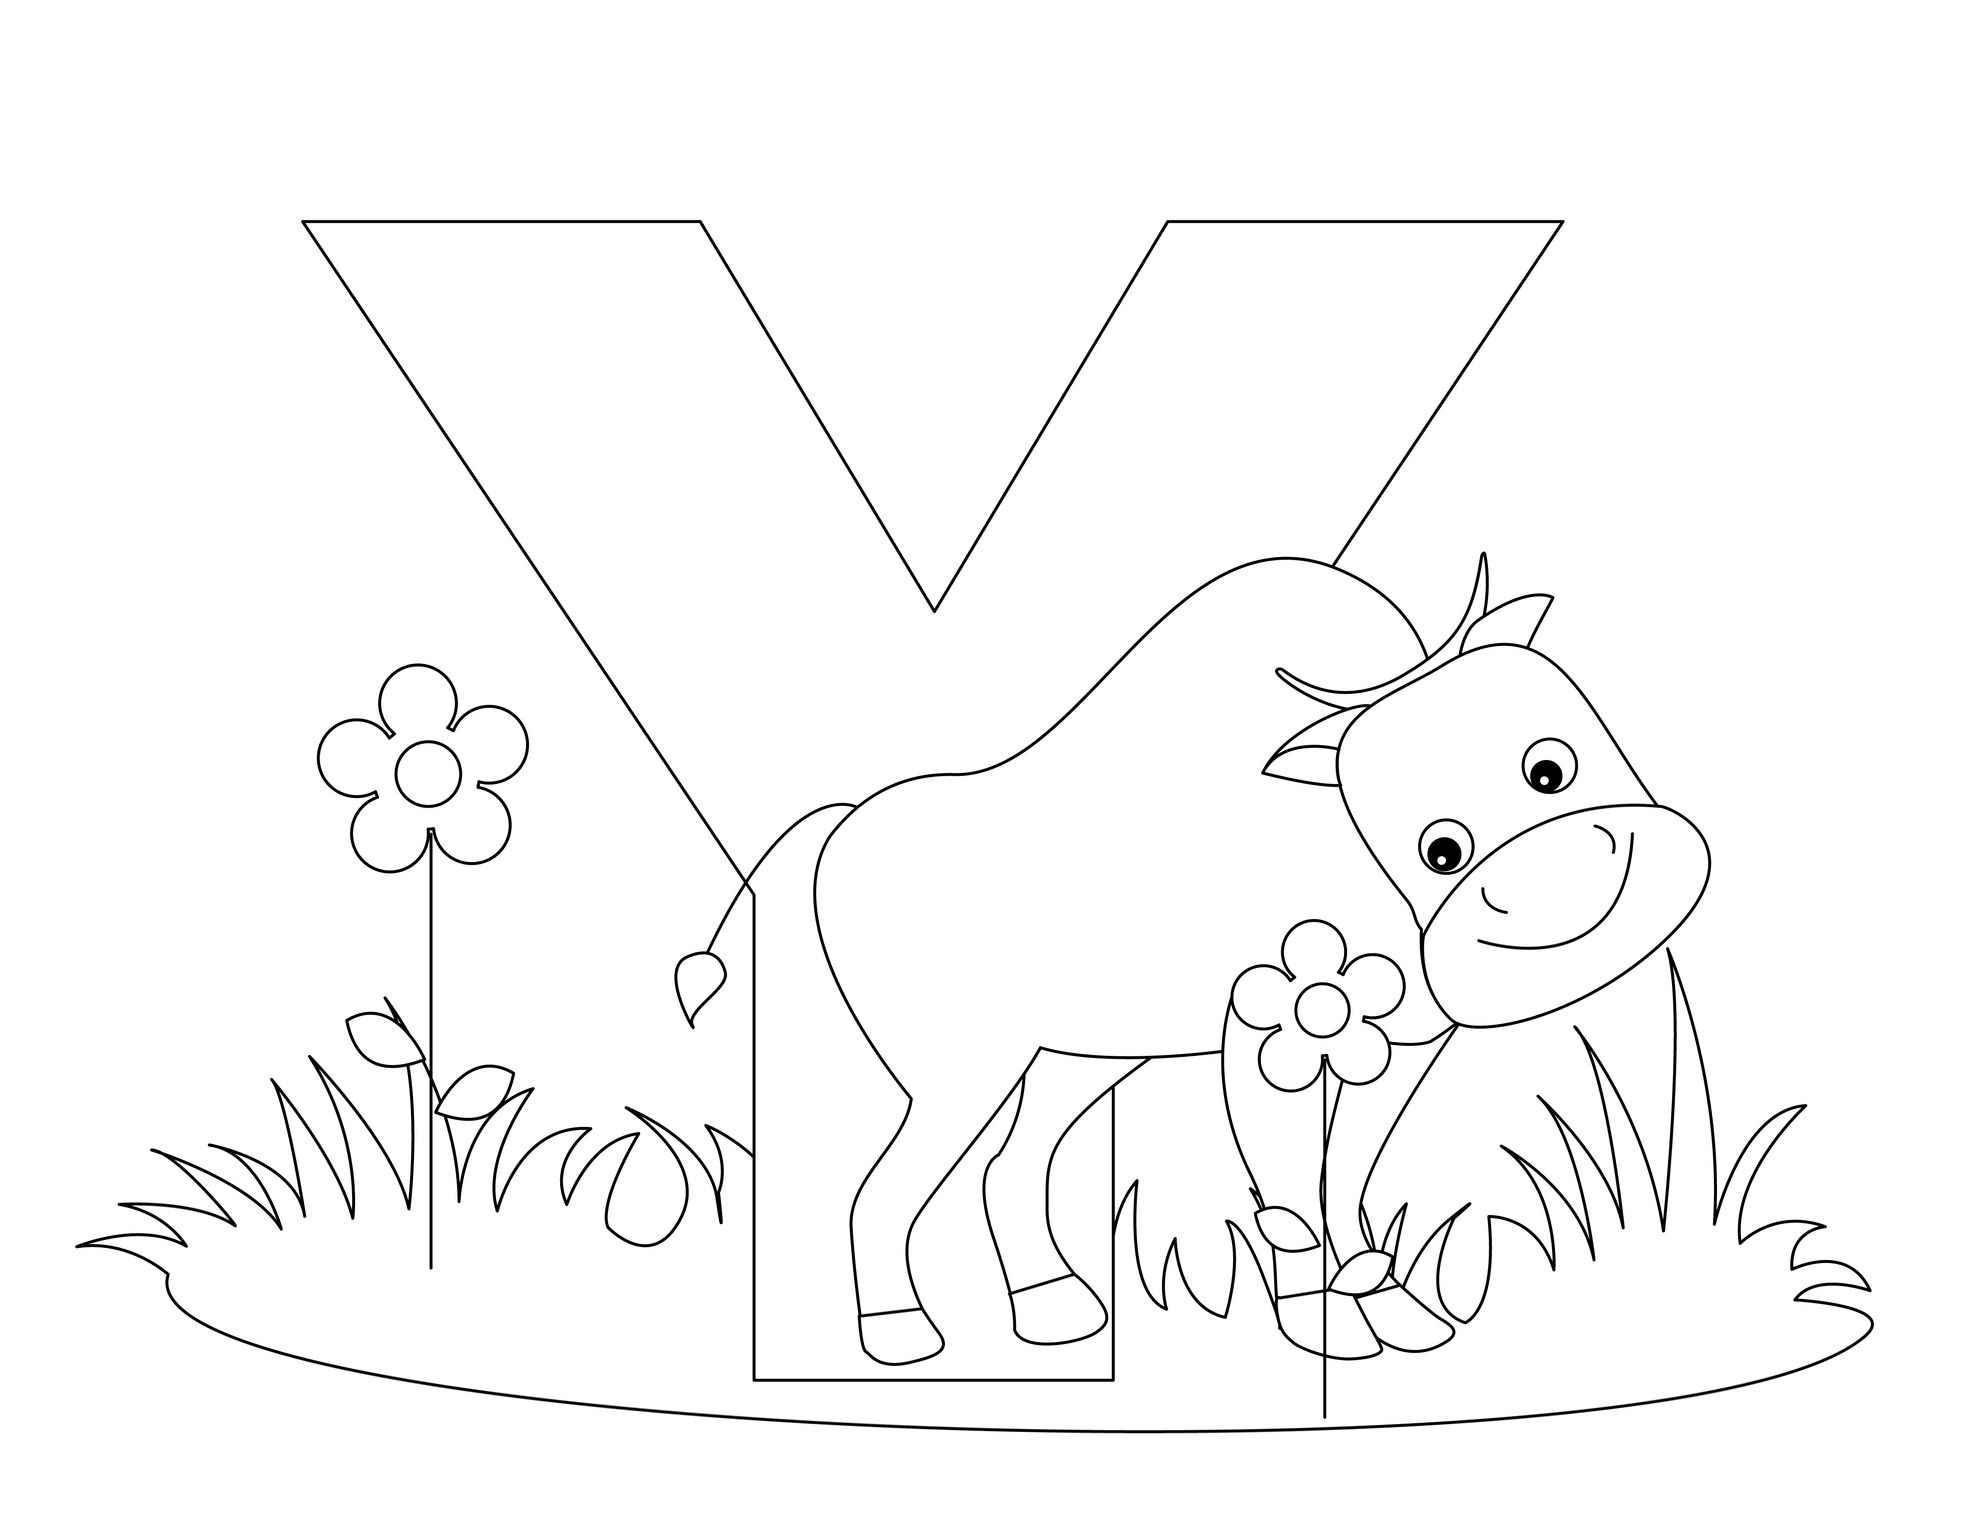 worksheet Letter Y Worksheet 18 best letter y images on pinterest preschool ideas printable animal alphabet worksheets is for yak coloring pages kids